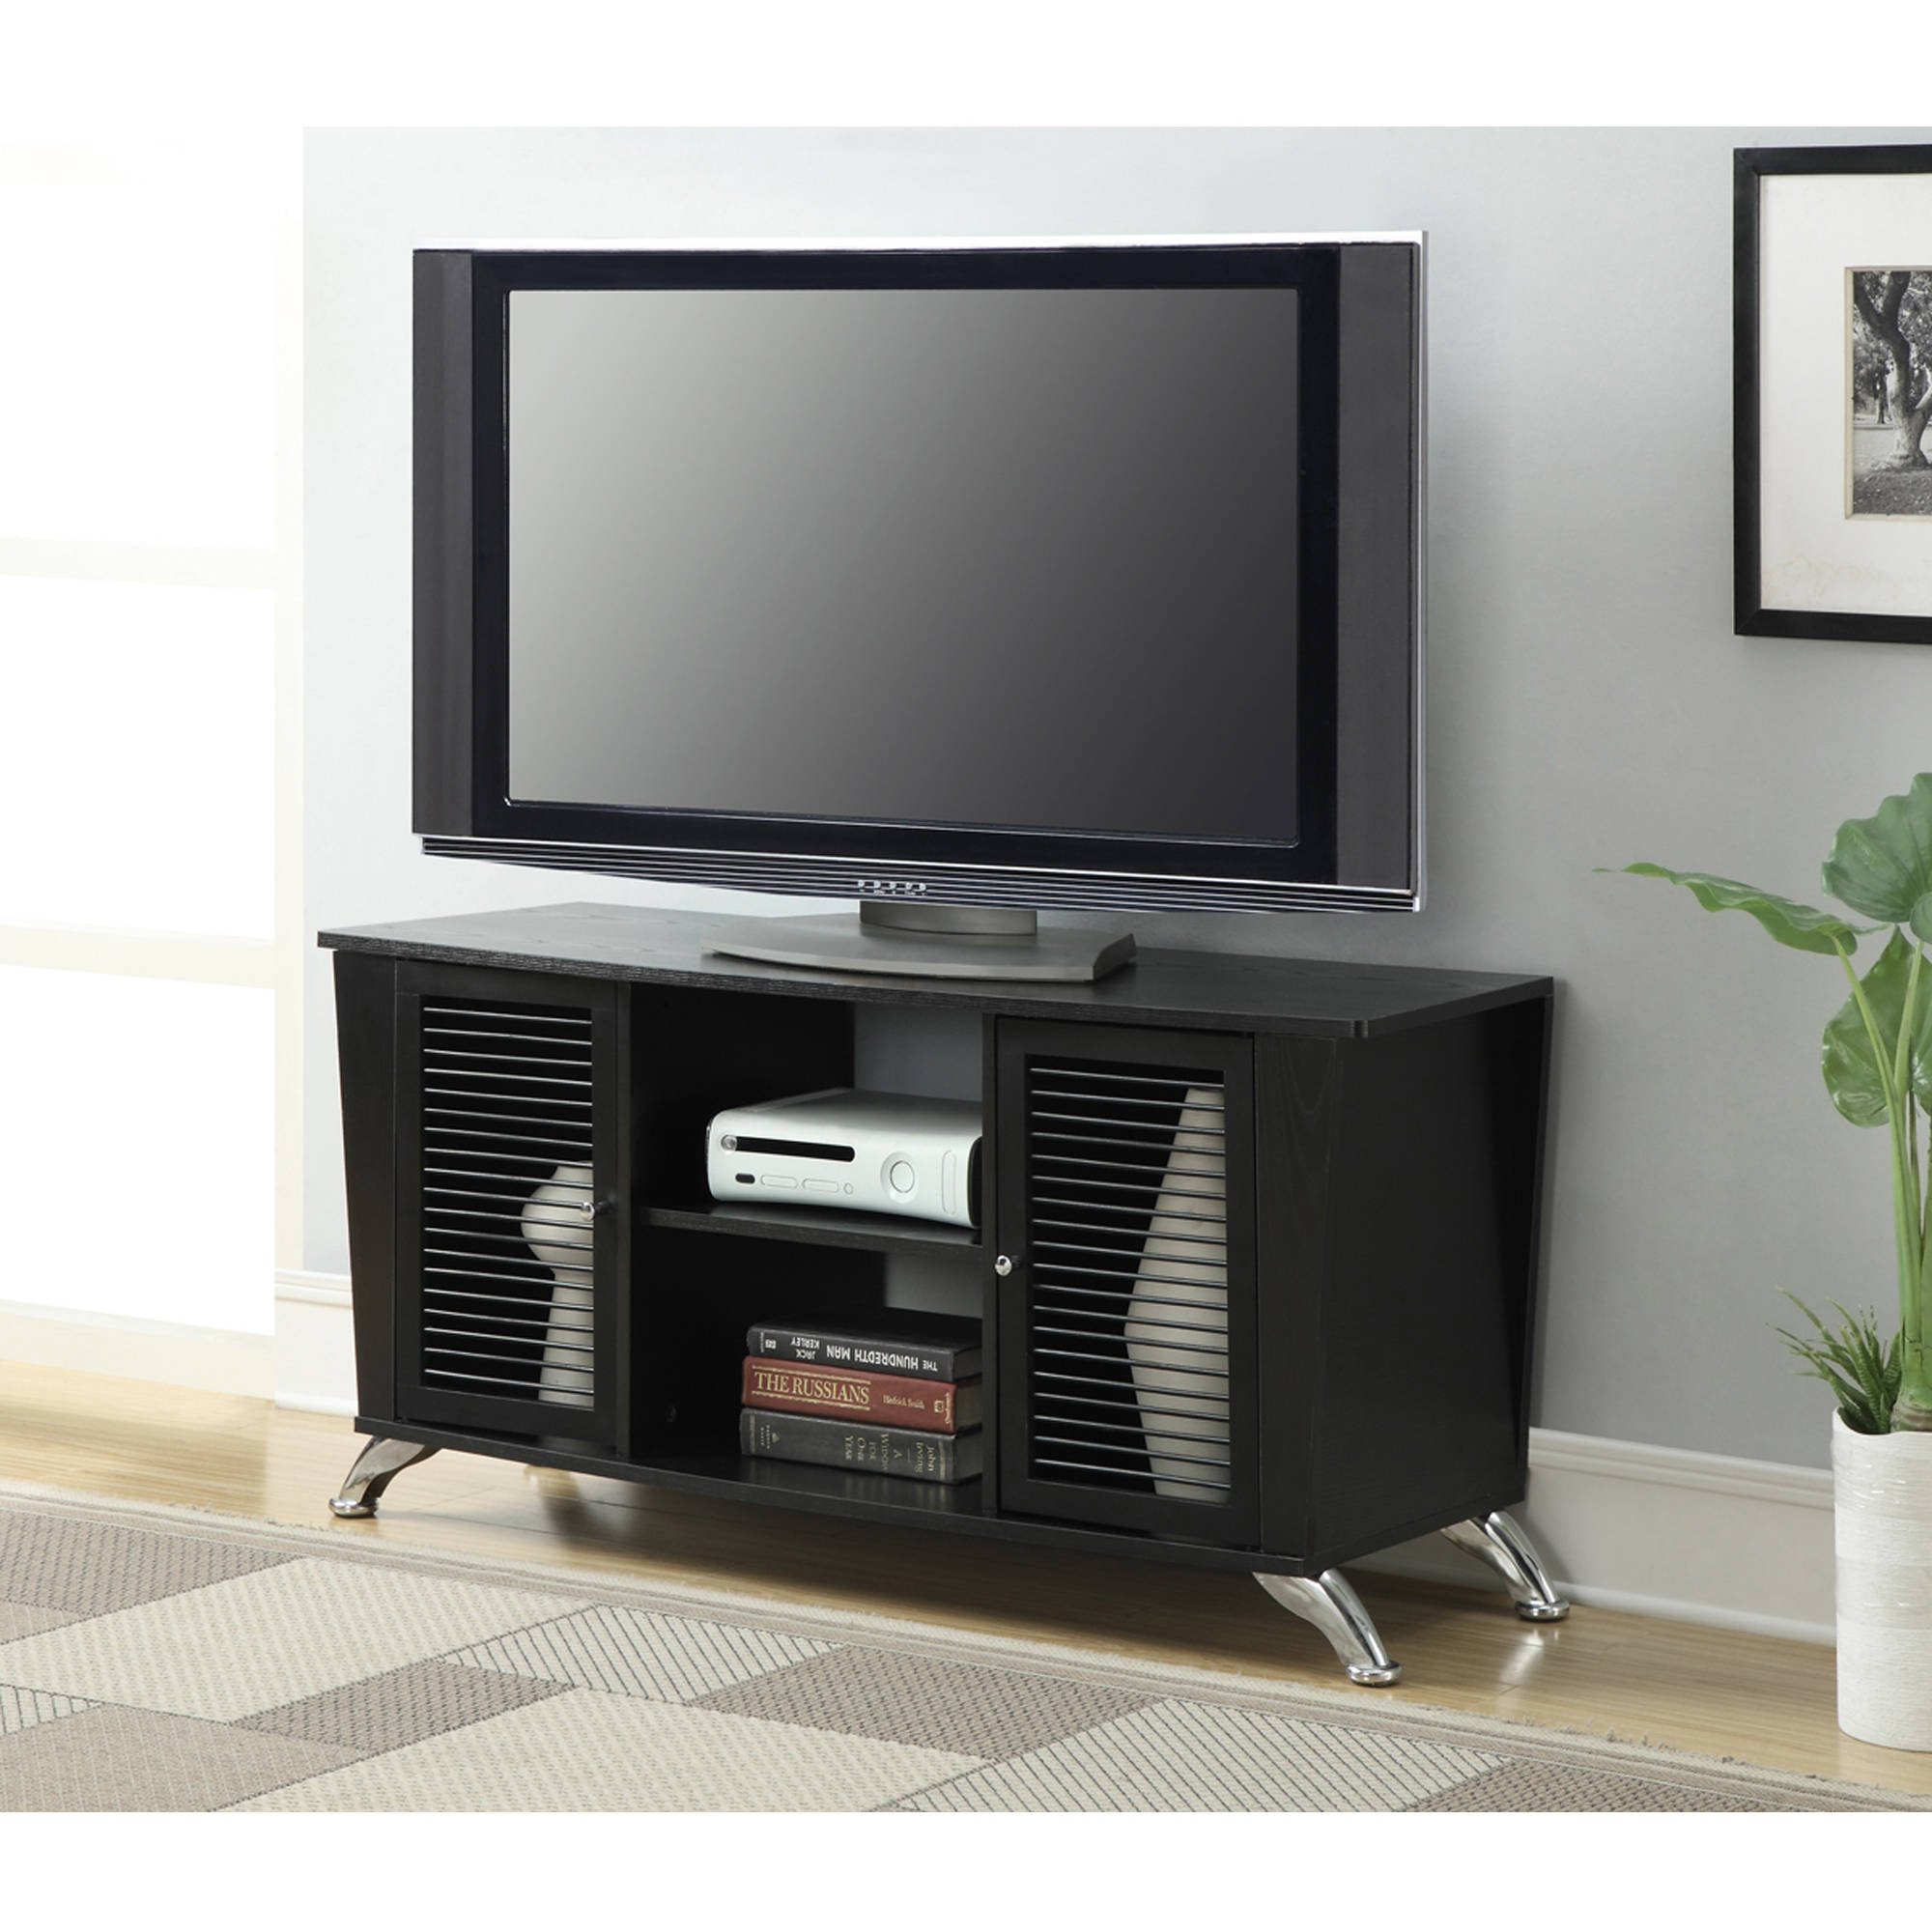 "Convenience Concepts Designs2Go TV Stand for TVs up to 50"", Black Voyager"